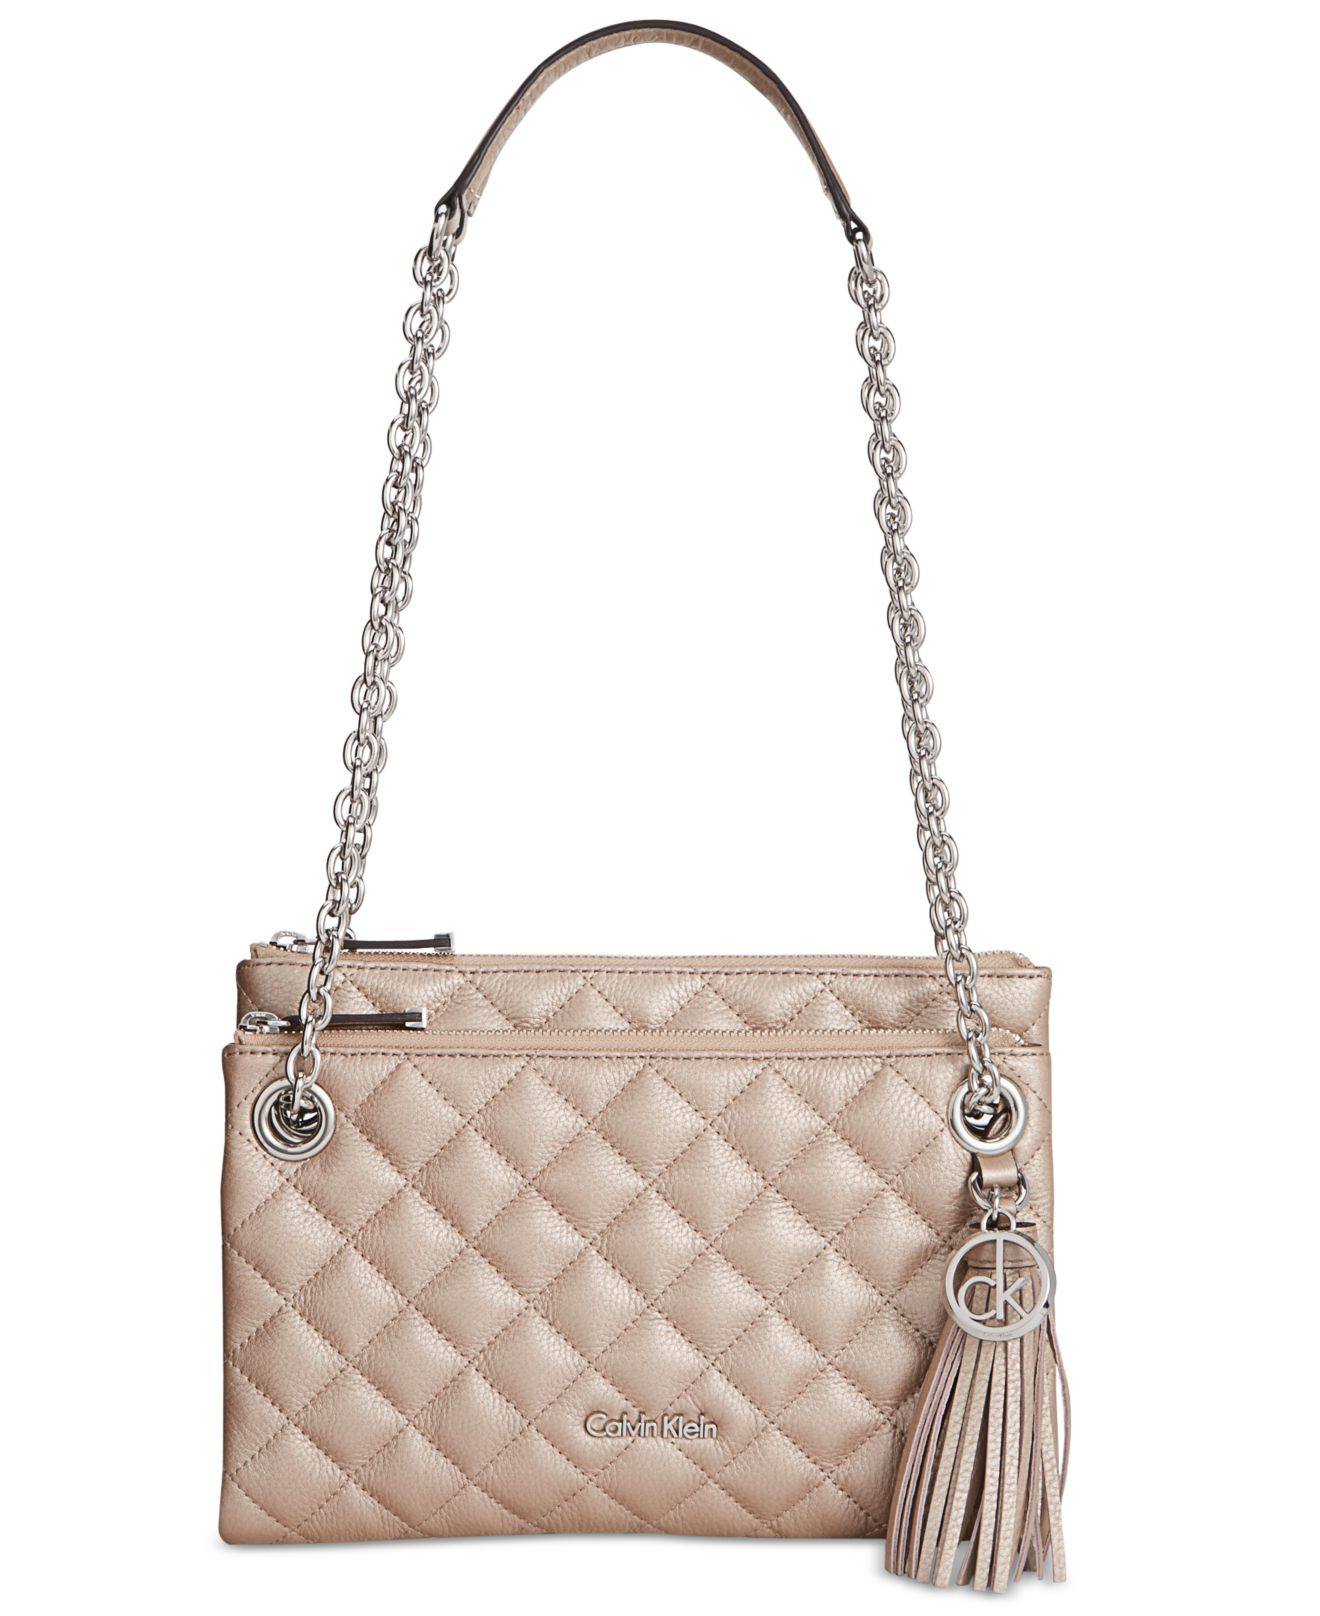 Calvin Klein Quilted Pebble Leather Triple Compartment